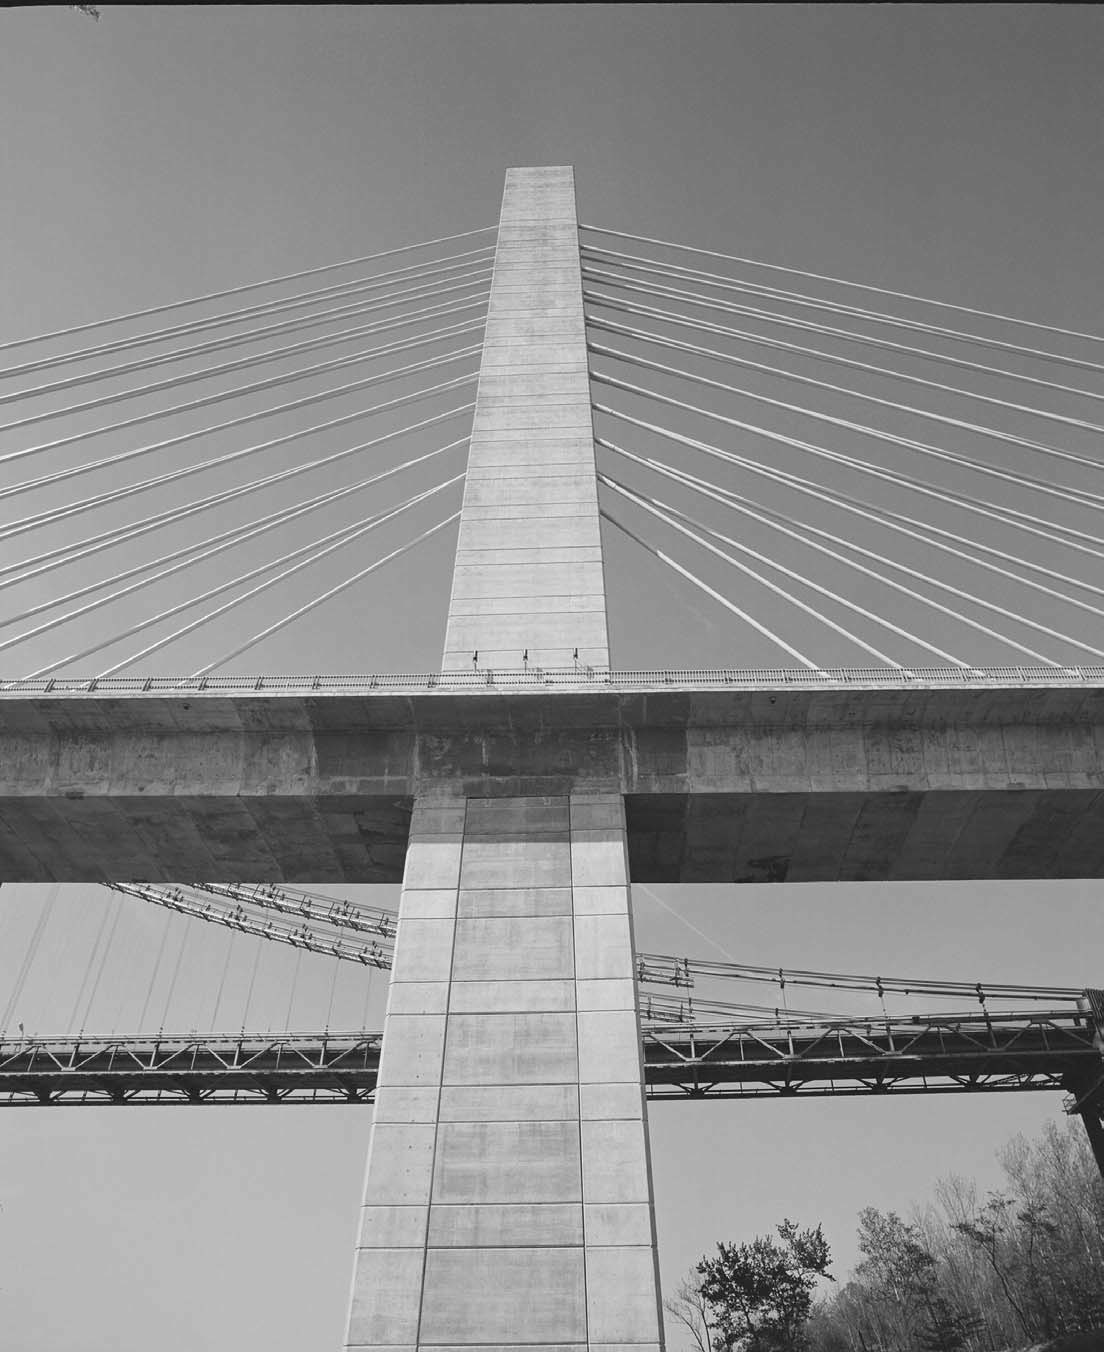 Aesthetics in the Construction and Design of Long-Span Prestressed